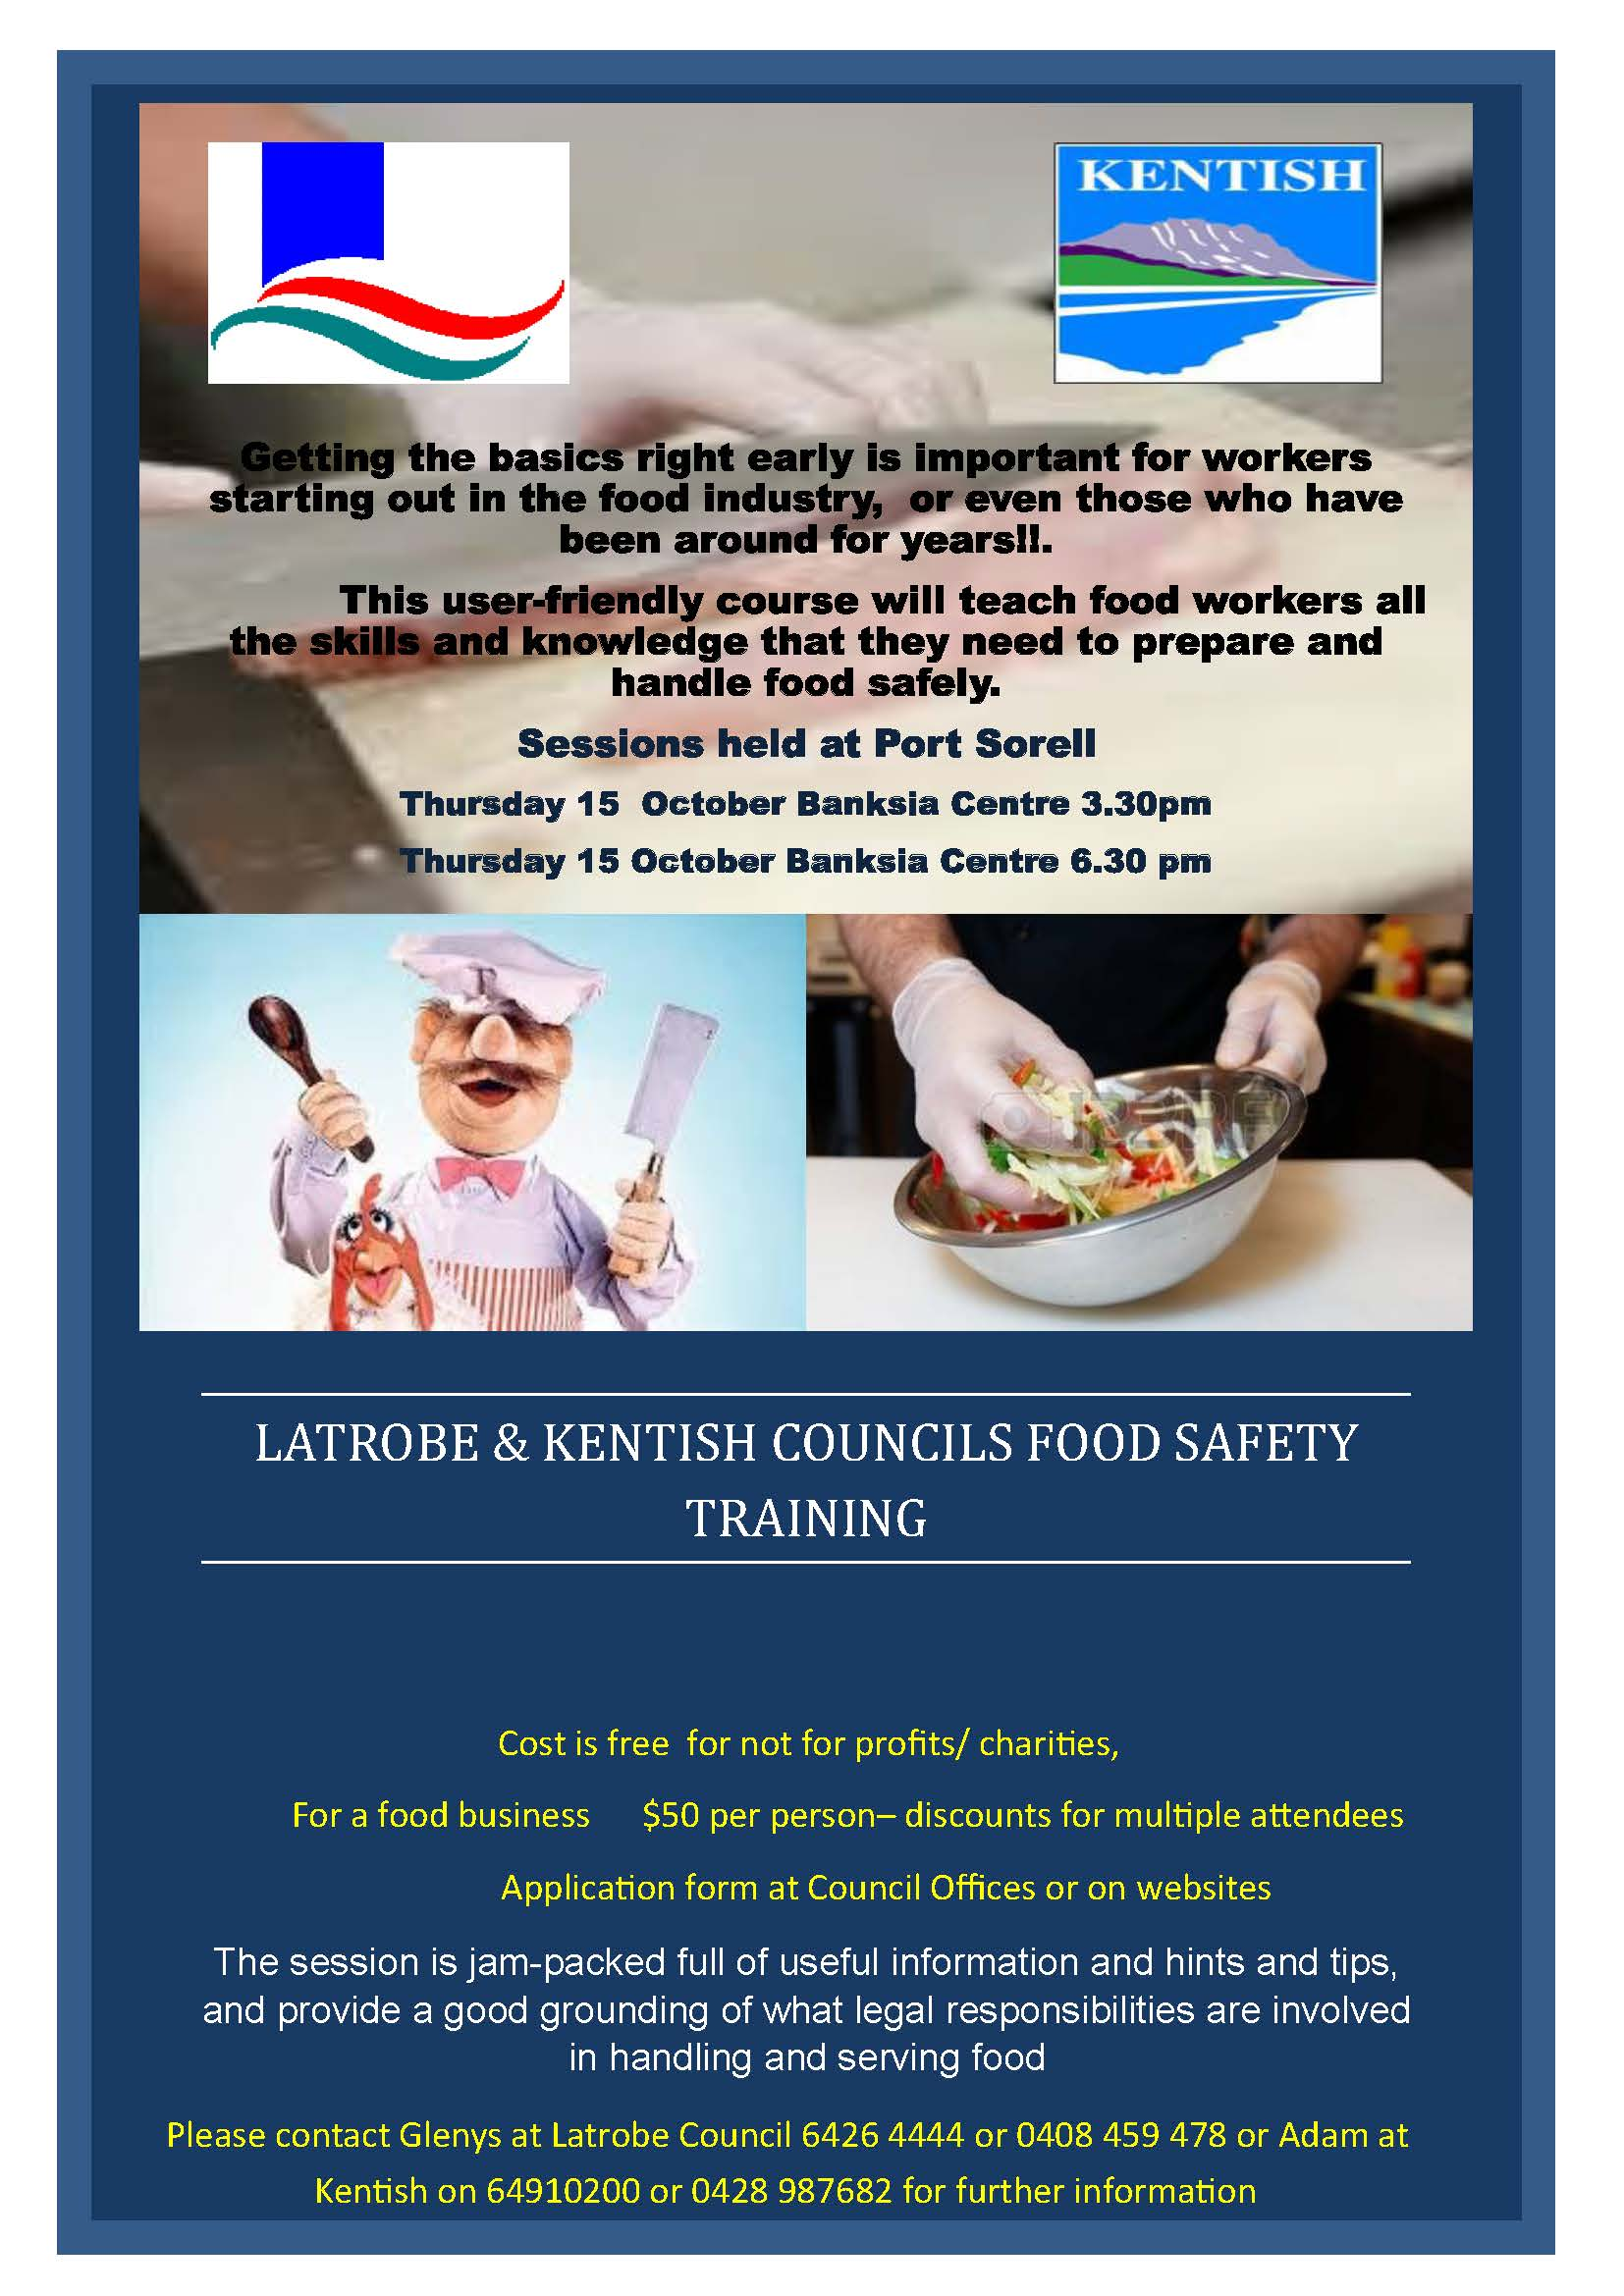 Food Safety Training Poster